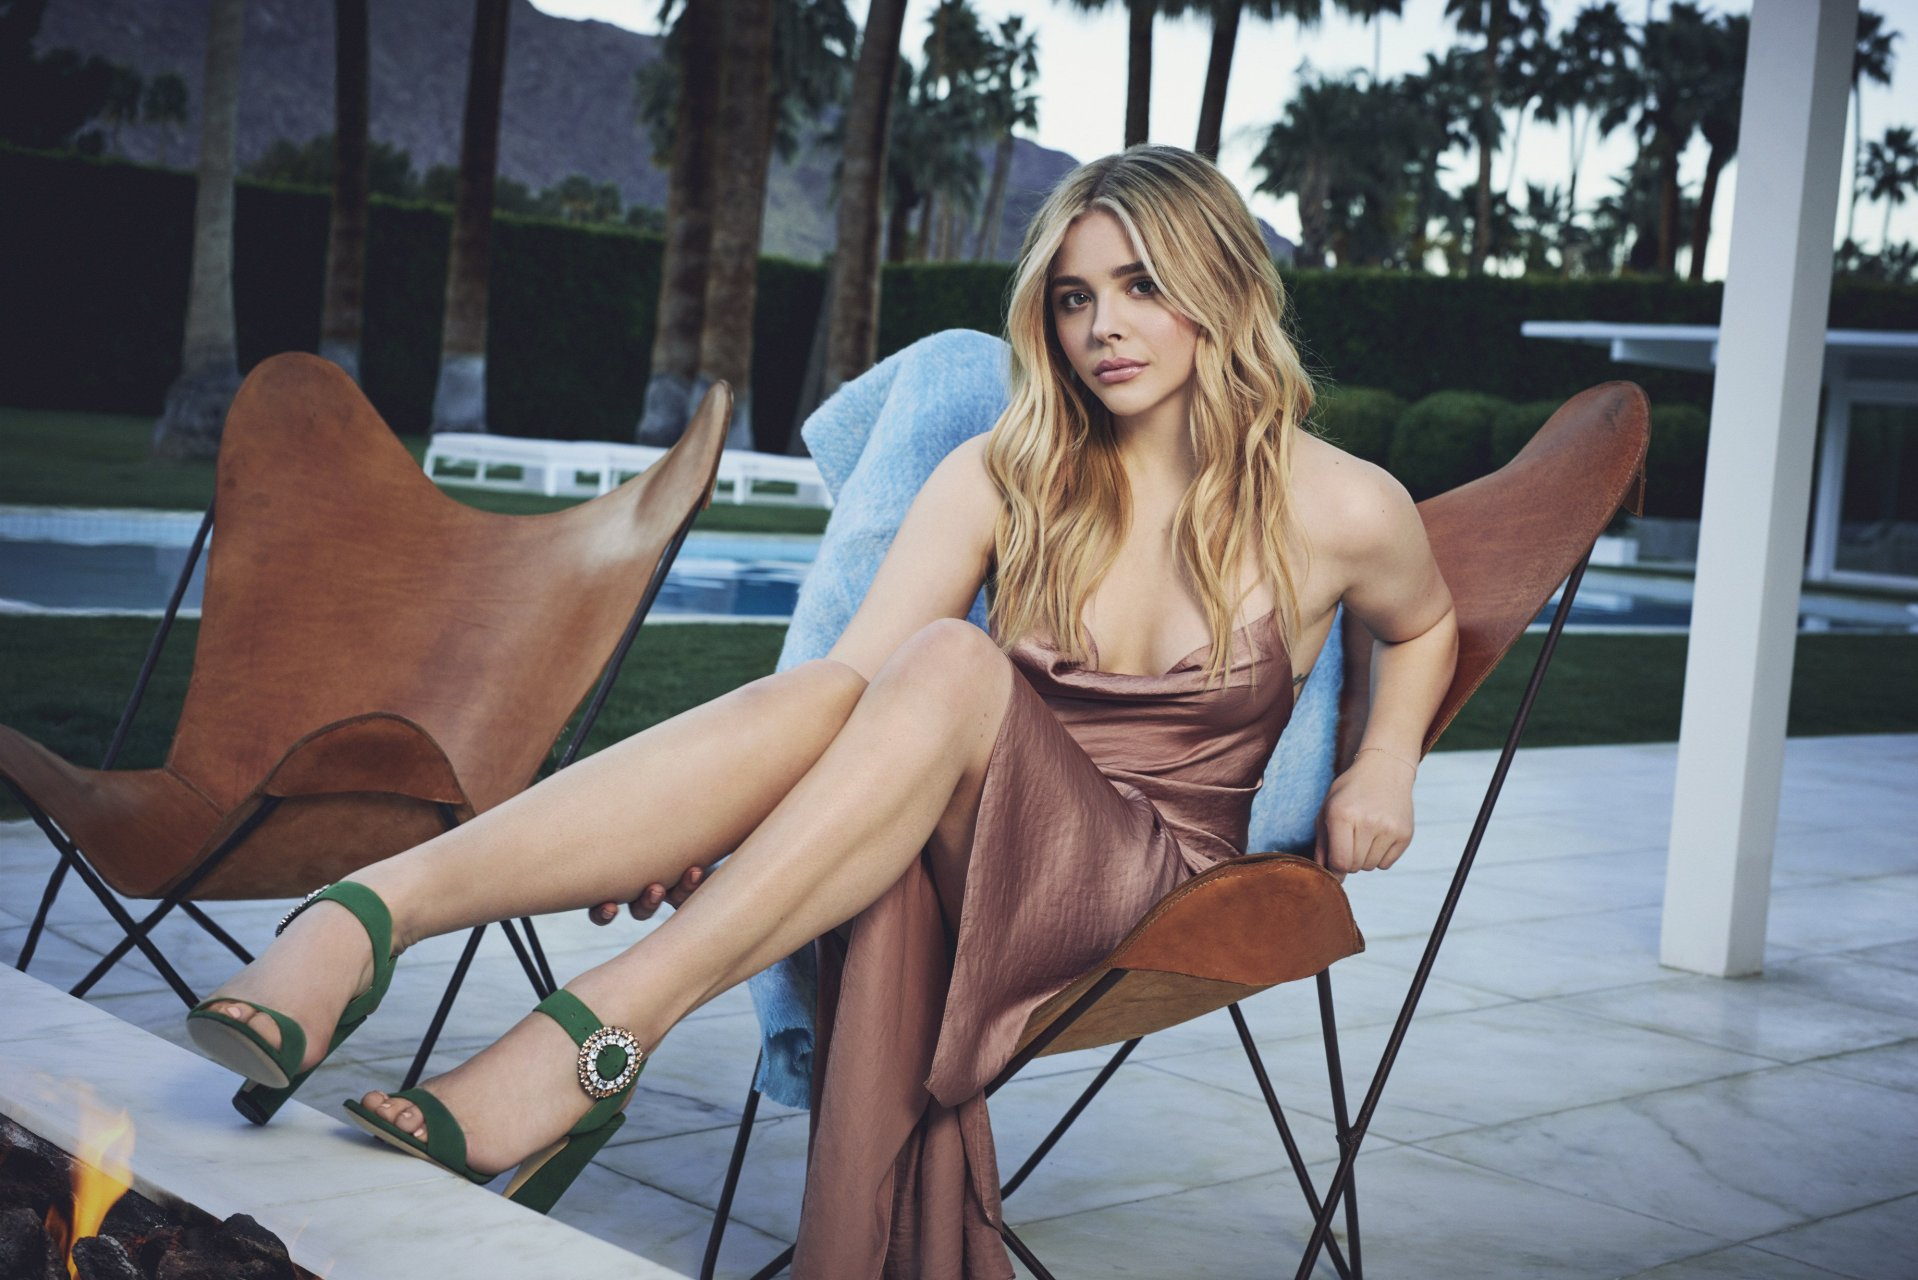 Chloe Grace Moretz Nude Photos And Videos Thefappening